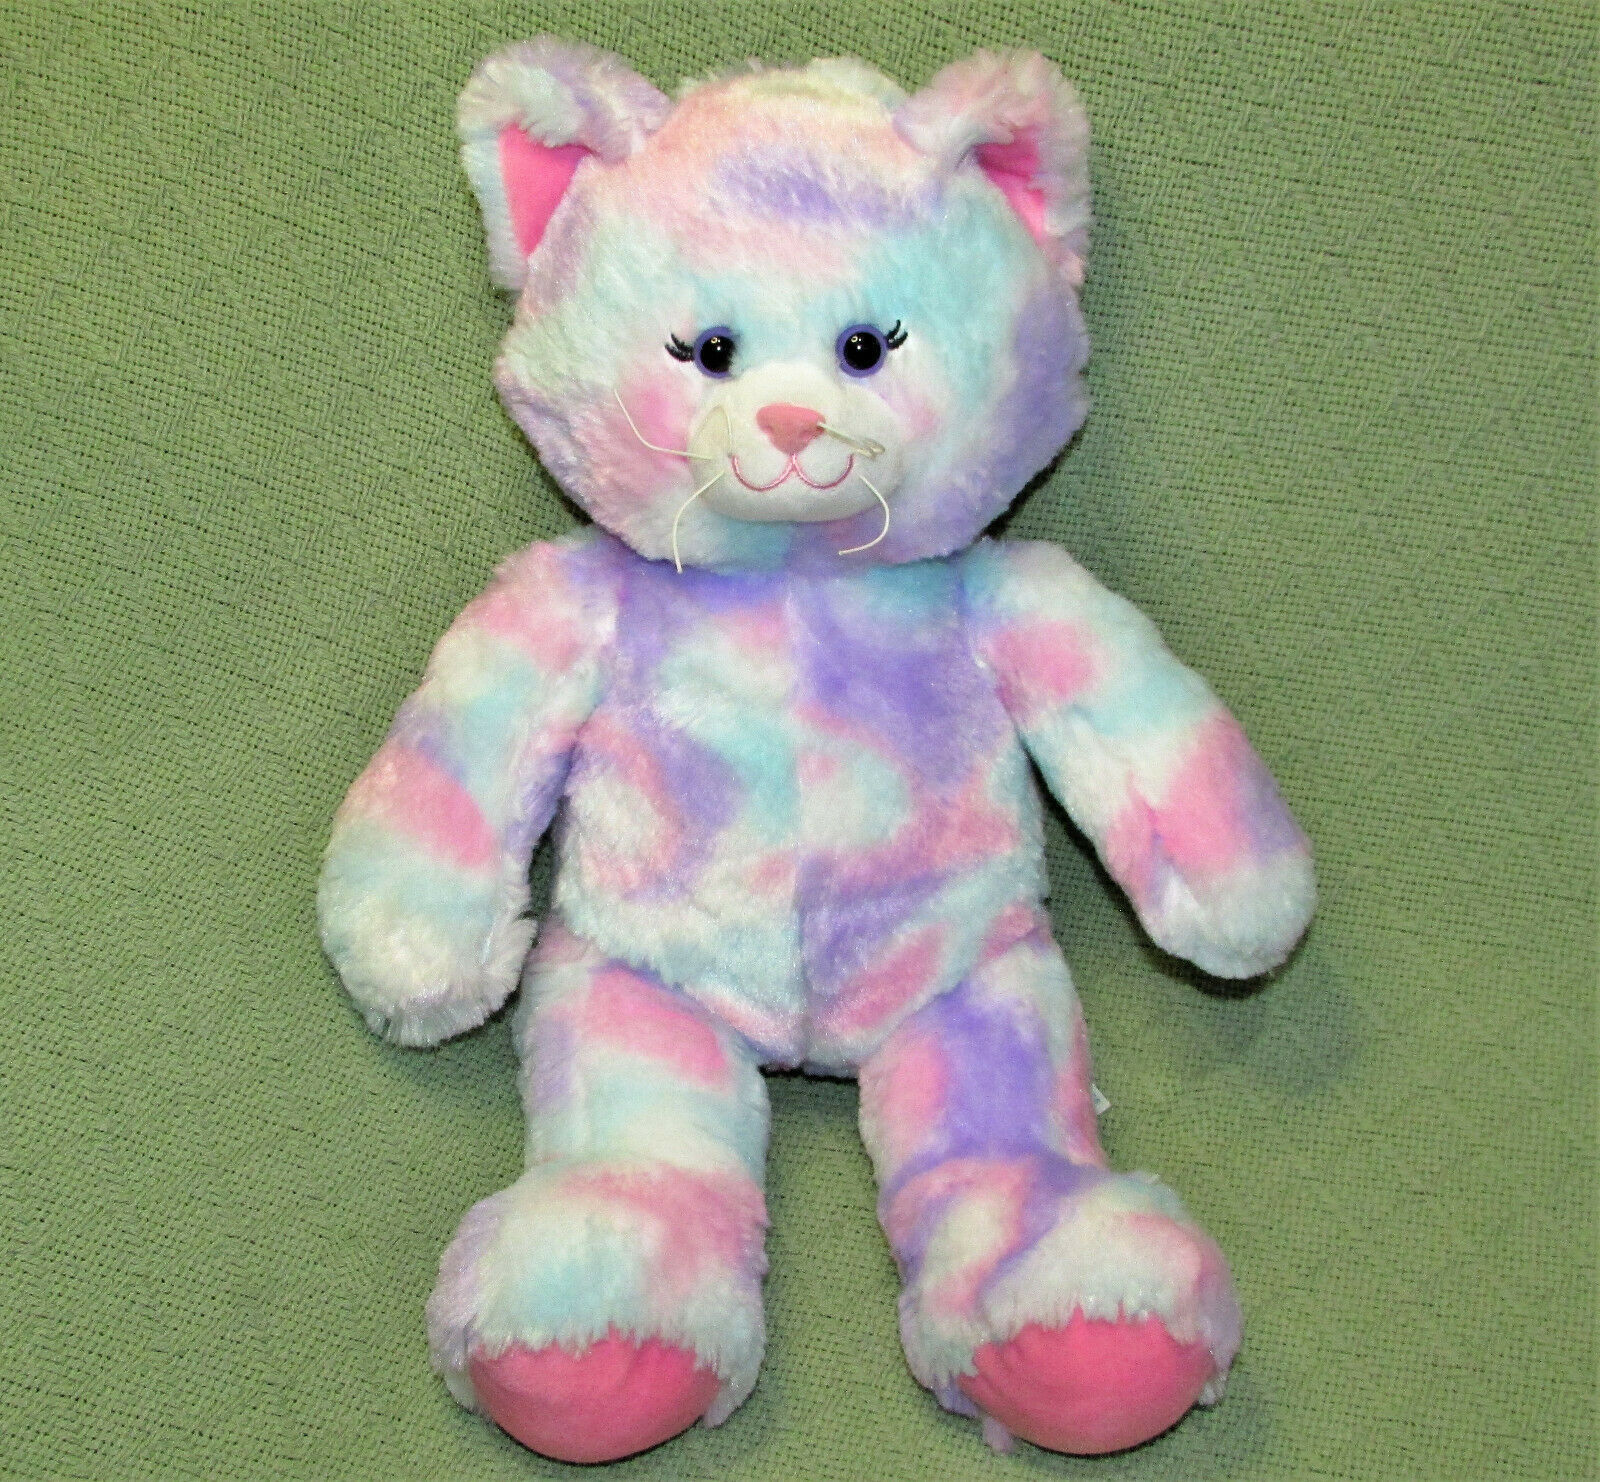 "Primary image for 16"" BUILD A BEAR CAT PASTEL TYE DYE PINK PURPLE STUFFED ANIMAL WITH VOICE BOX"